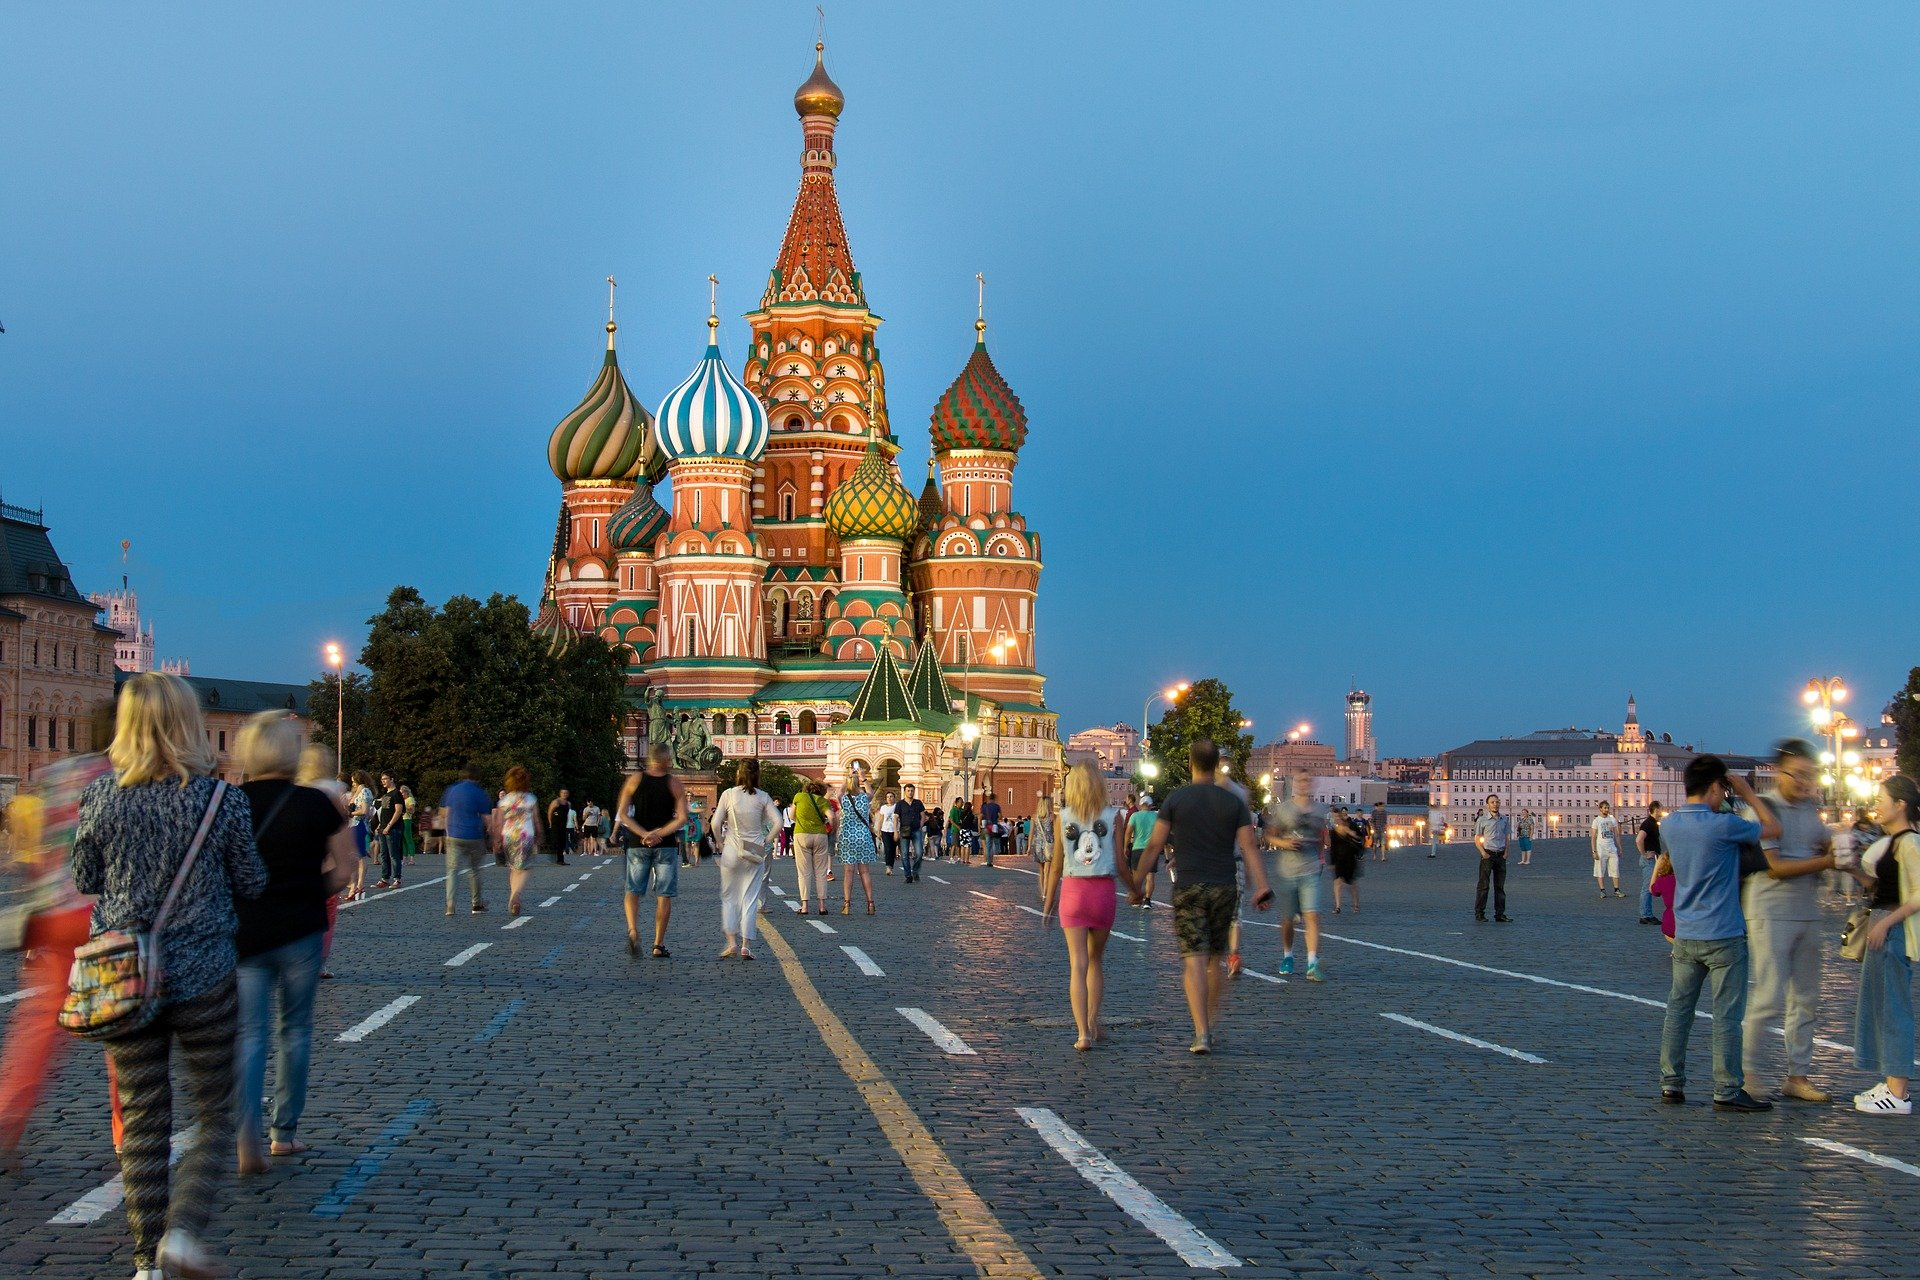 Russian oligarchs the 'most sophisticated in the world' at dodging KYC and evading sanctions